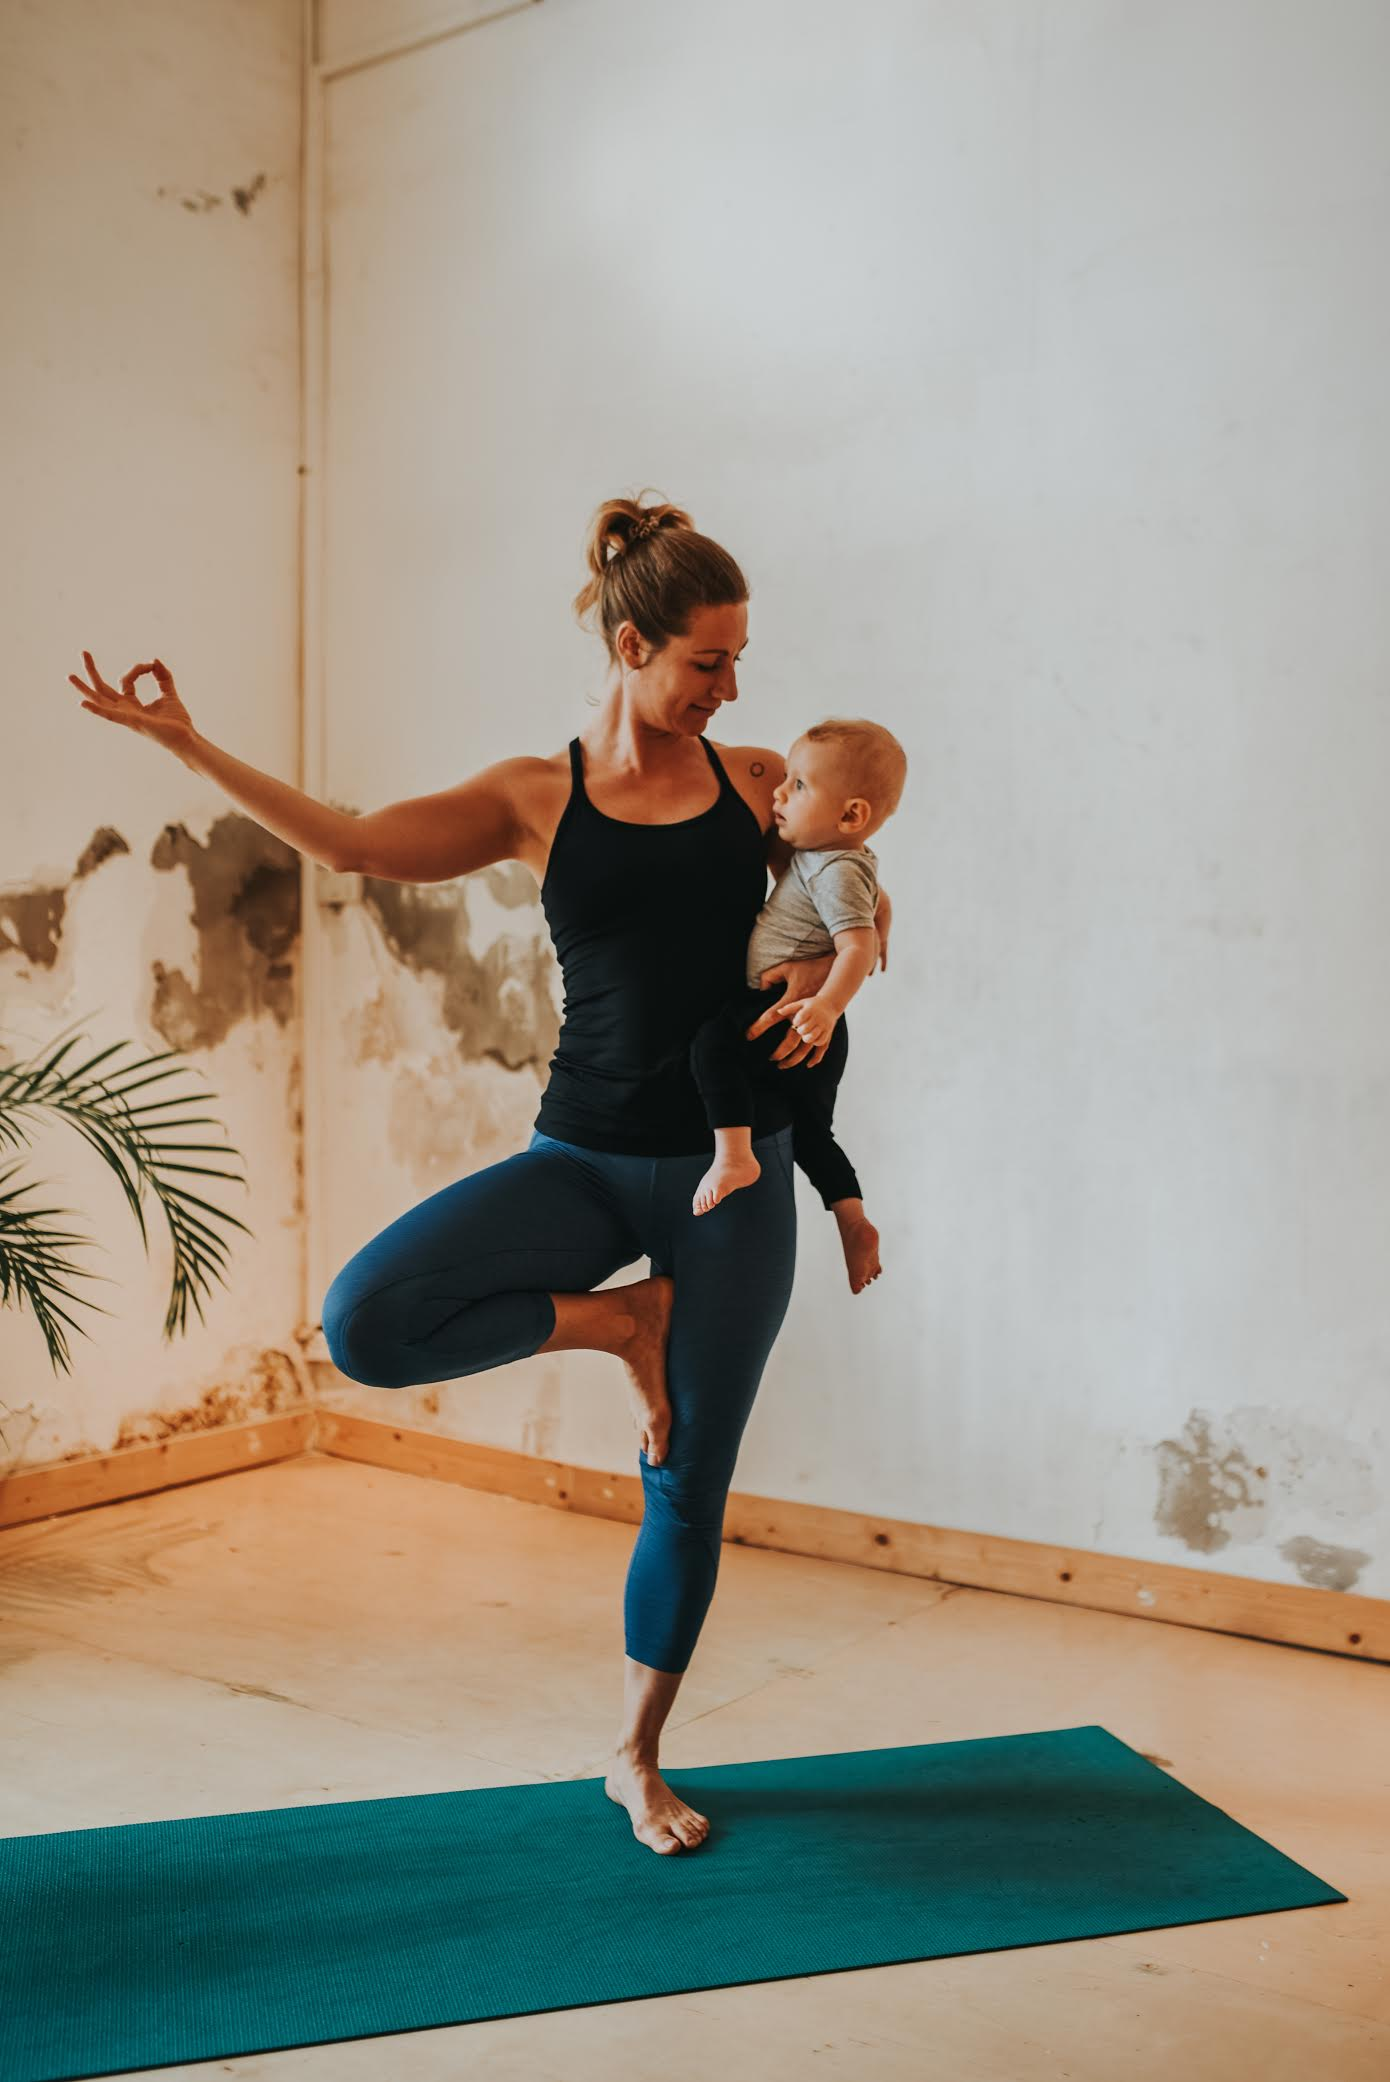 Prenatal Yoga Private And In Group Form Is Designed For Moms To Become Make Their Labor Time Pregnancy Easier Deal With Physically